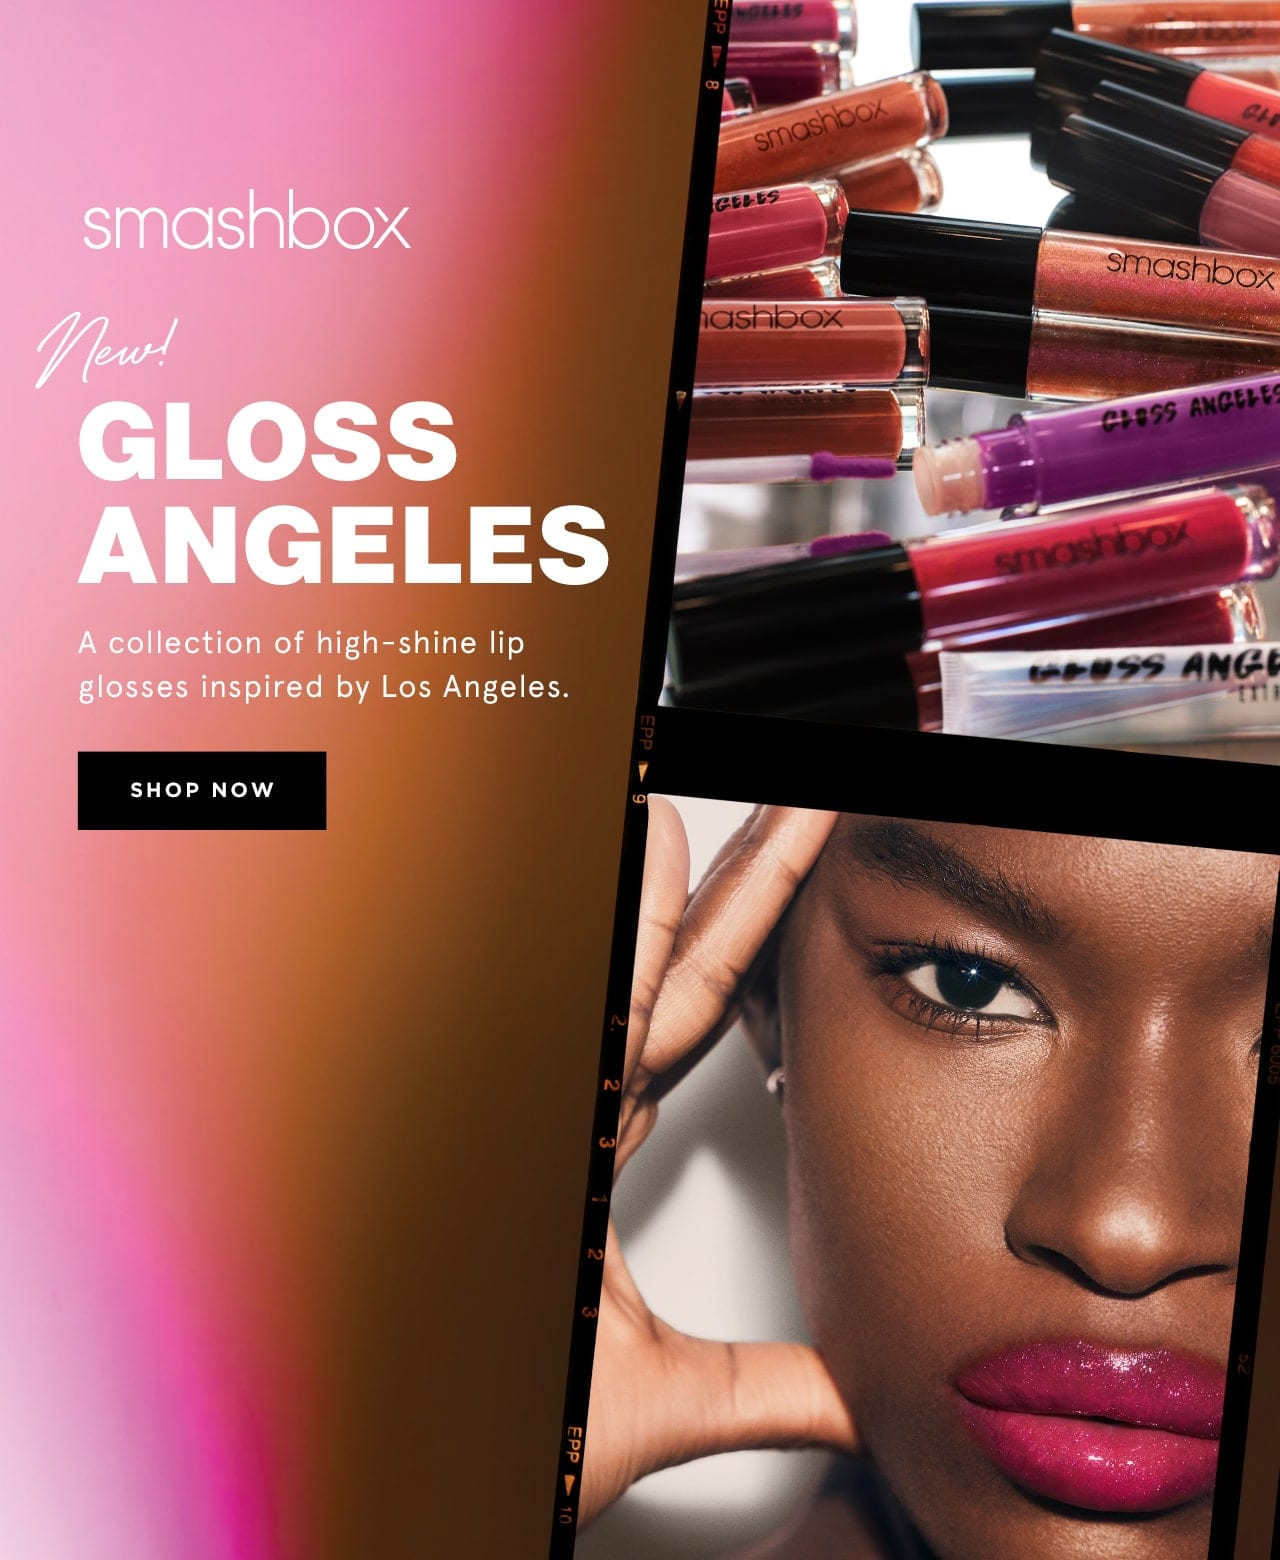 Smashbox new gloss angeles. A collection of high-shine lip glosses inspired by Los Angeles